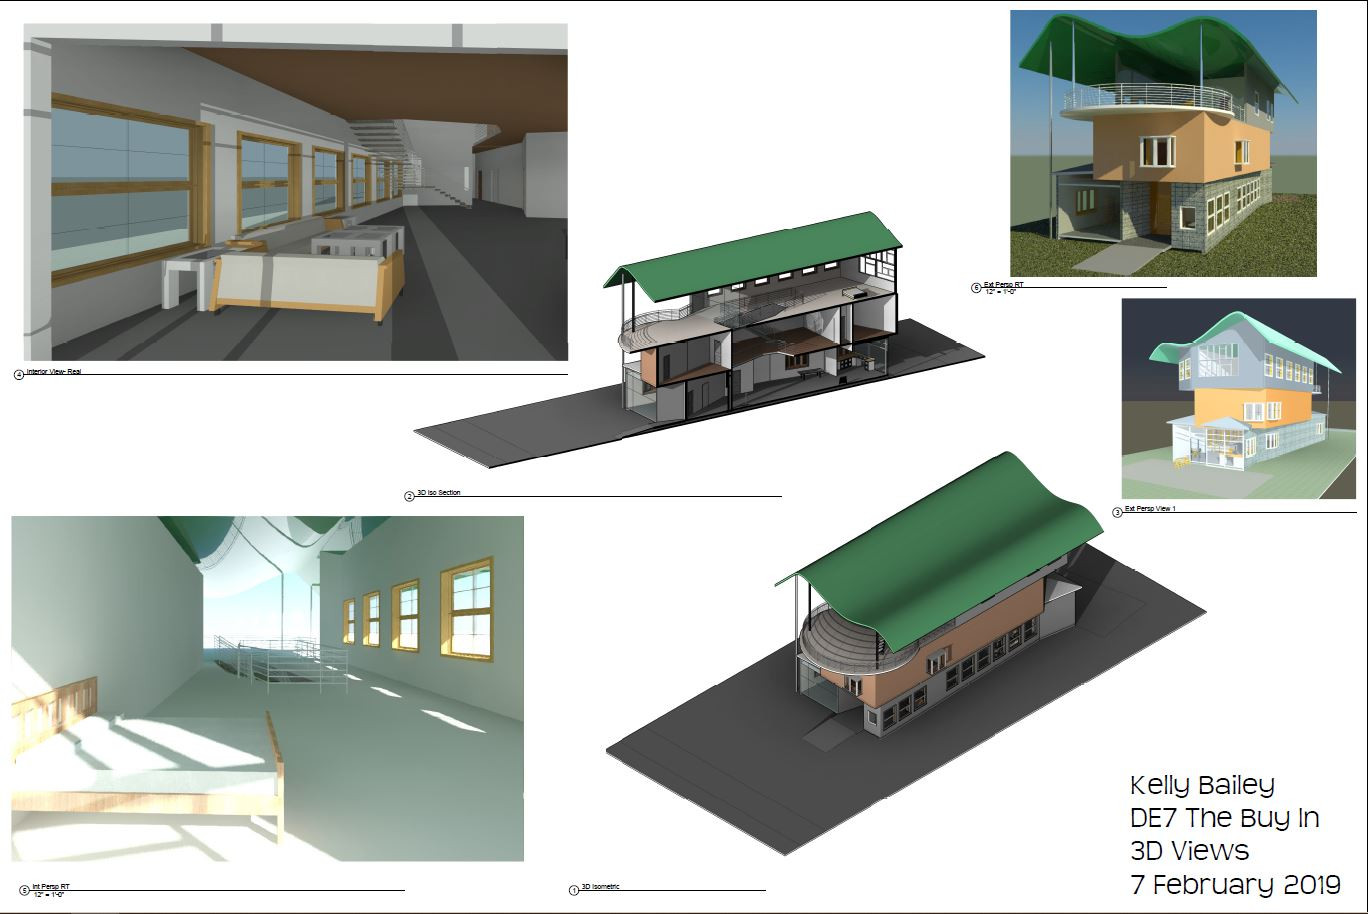 3D and Isometric Views